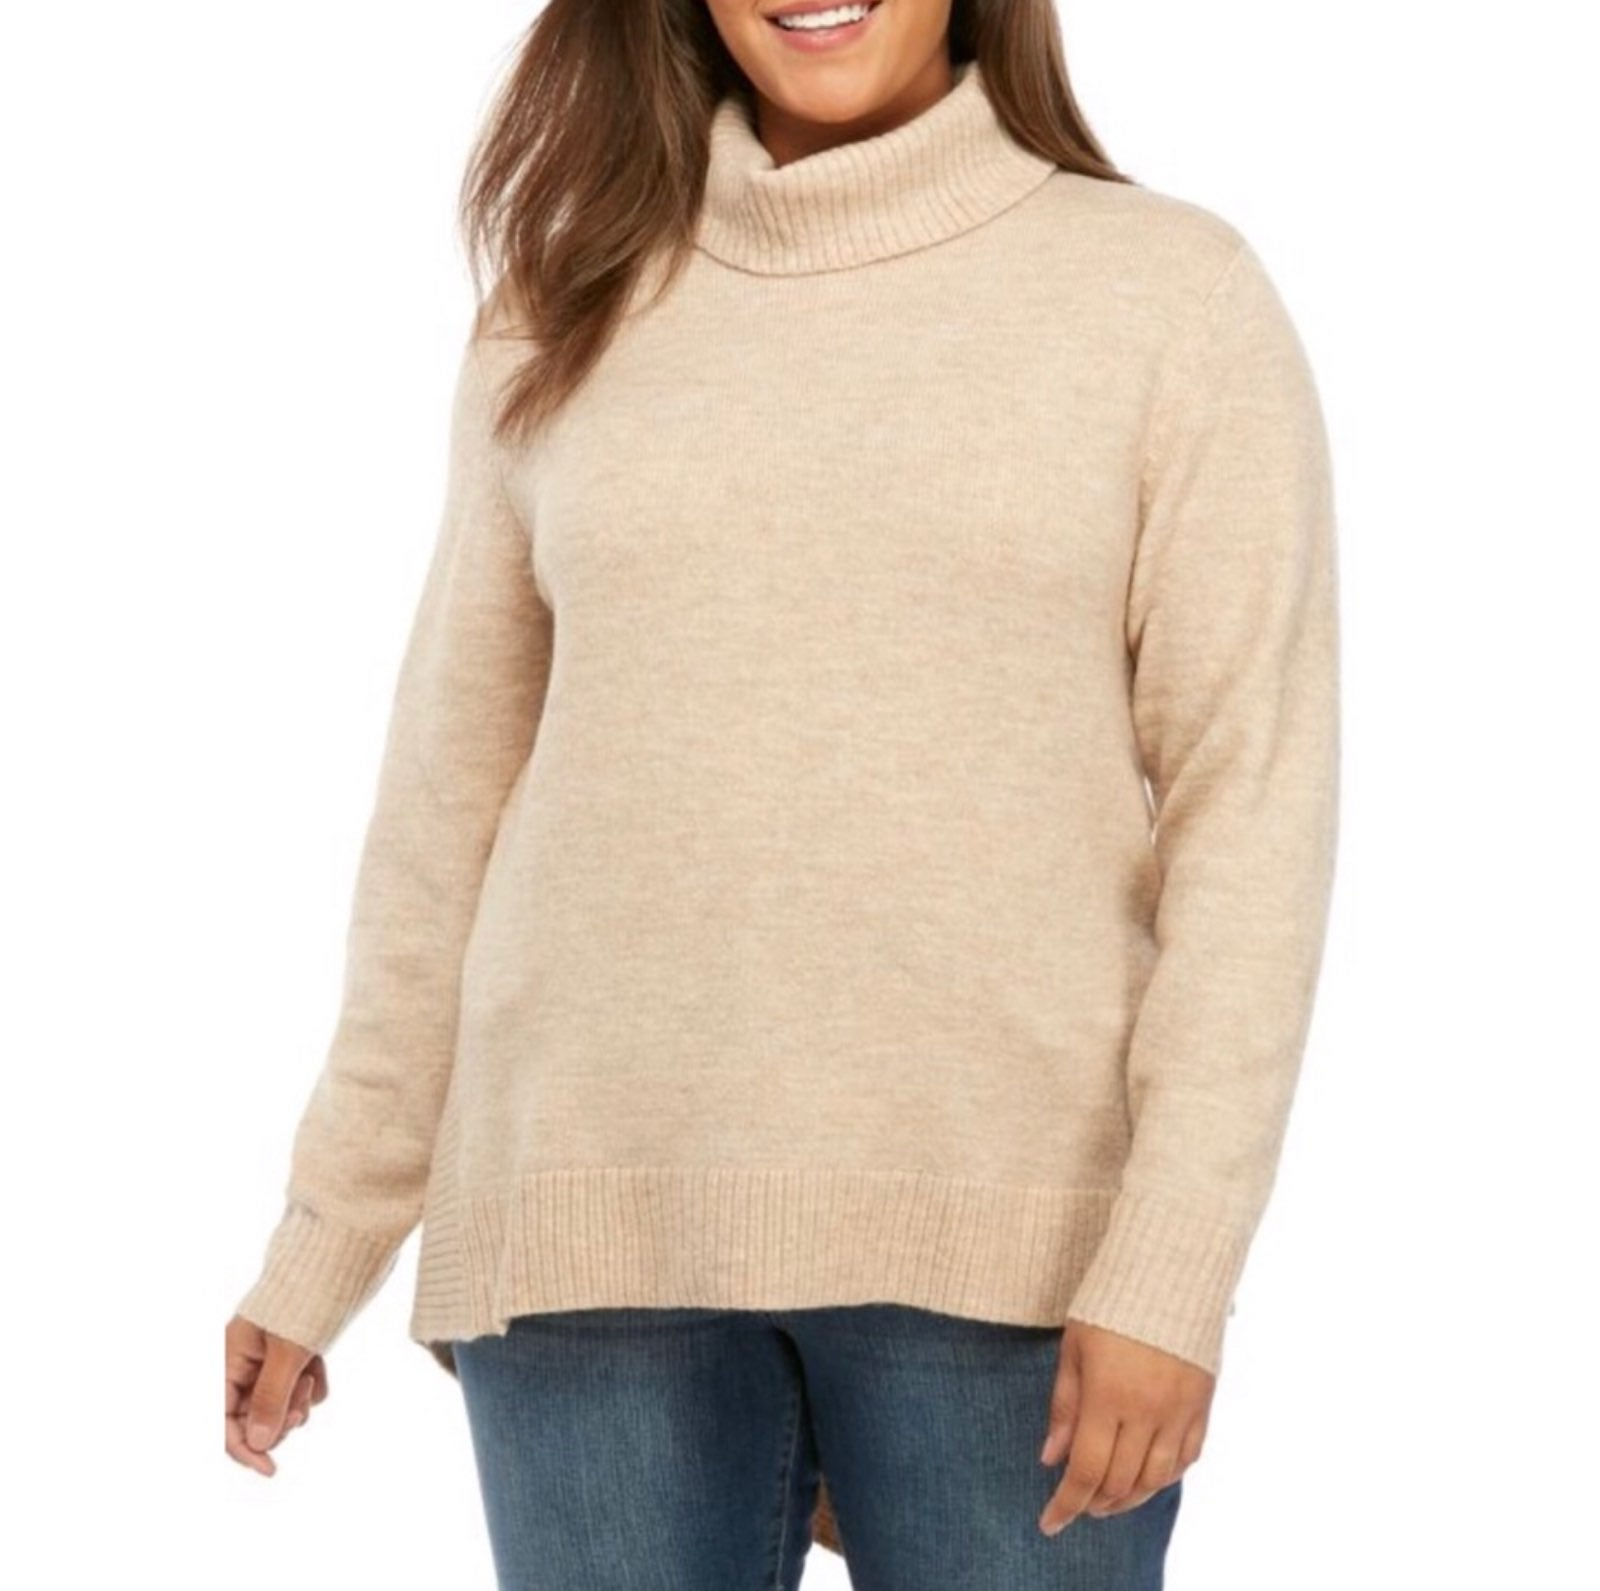 New Directions Turtleneck Sweater 3X